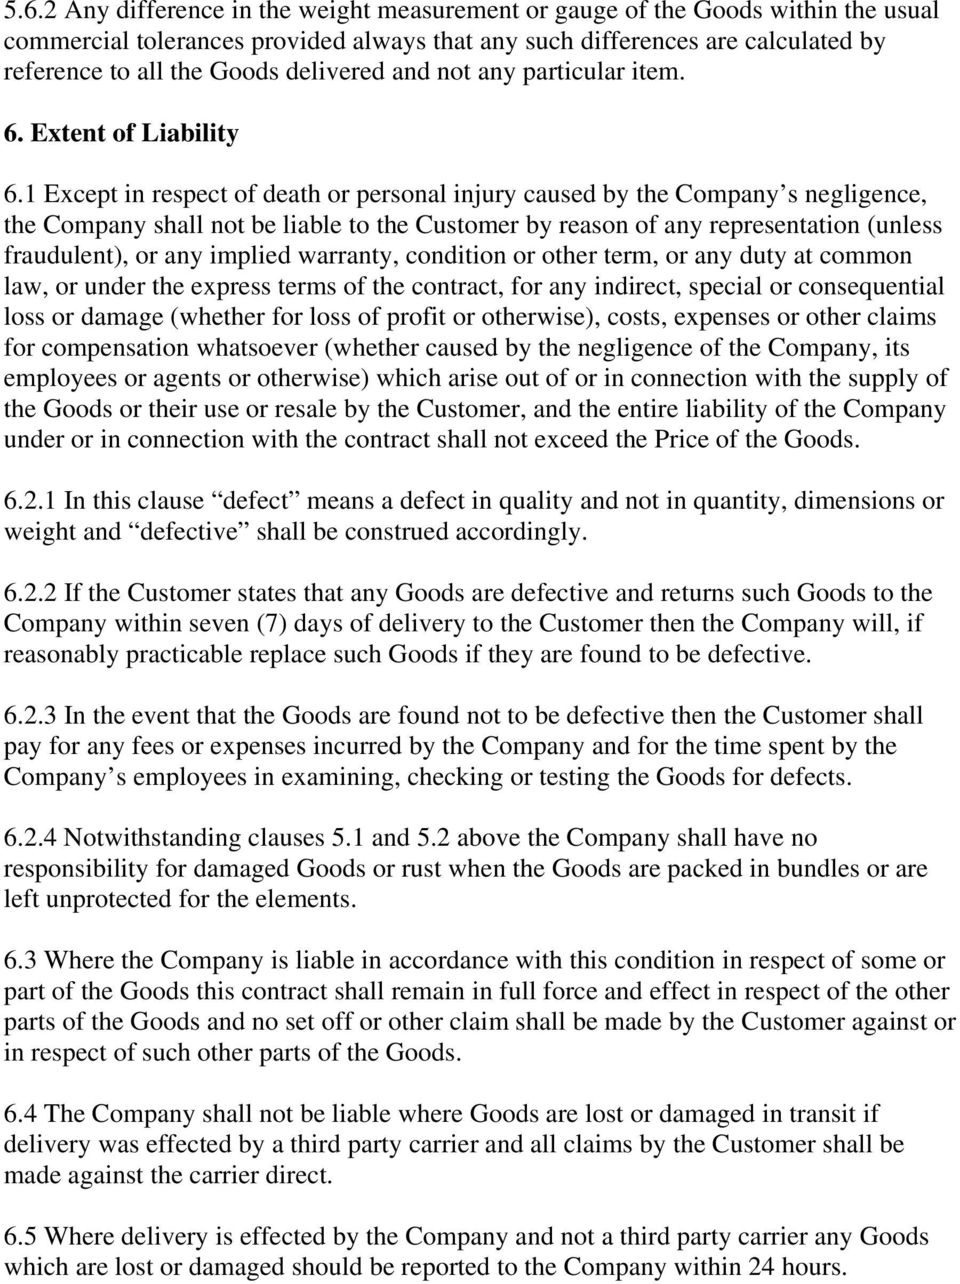 1 Except in respect of death or personal injury caused by the Company s negligence, the Company shall not be liable to the Customer by reason of any representation (unless fraudulent), or any implied